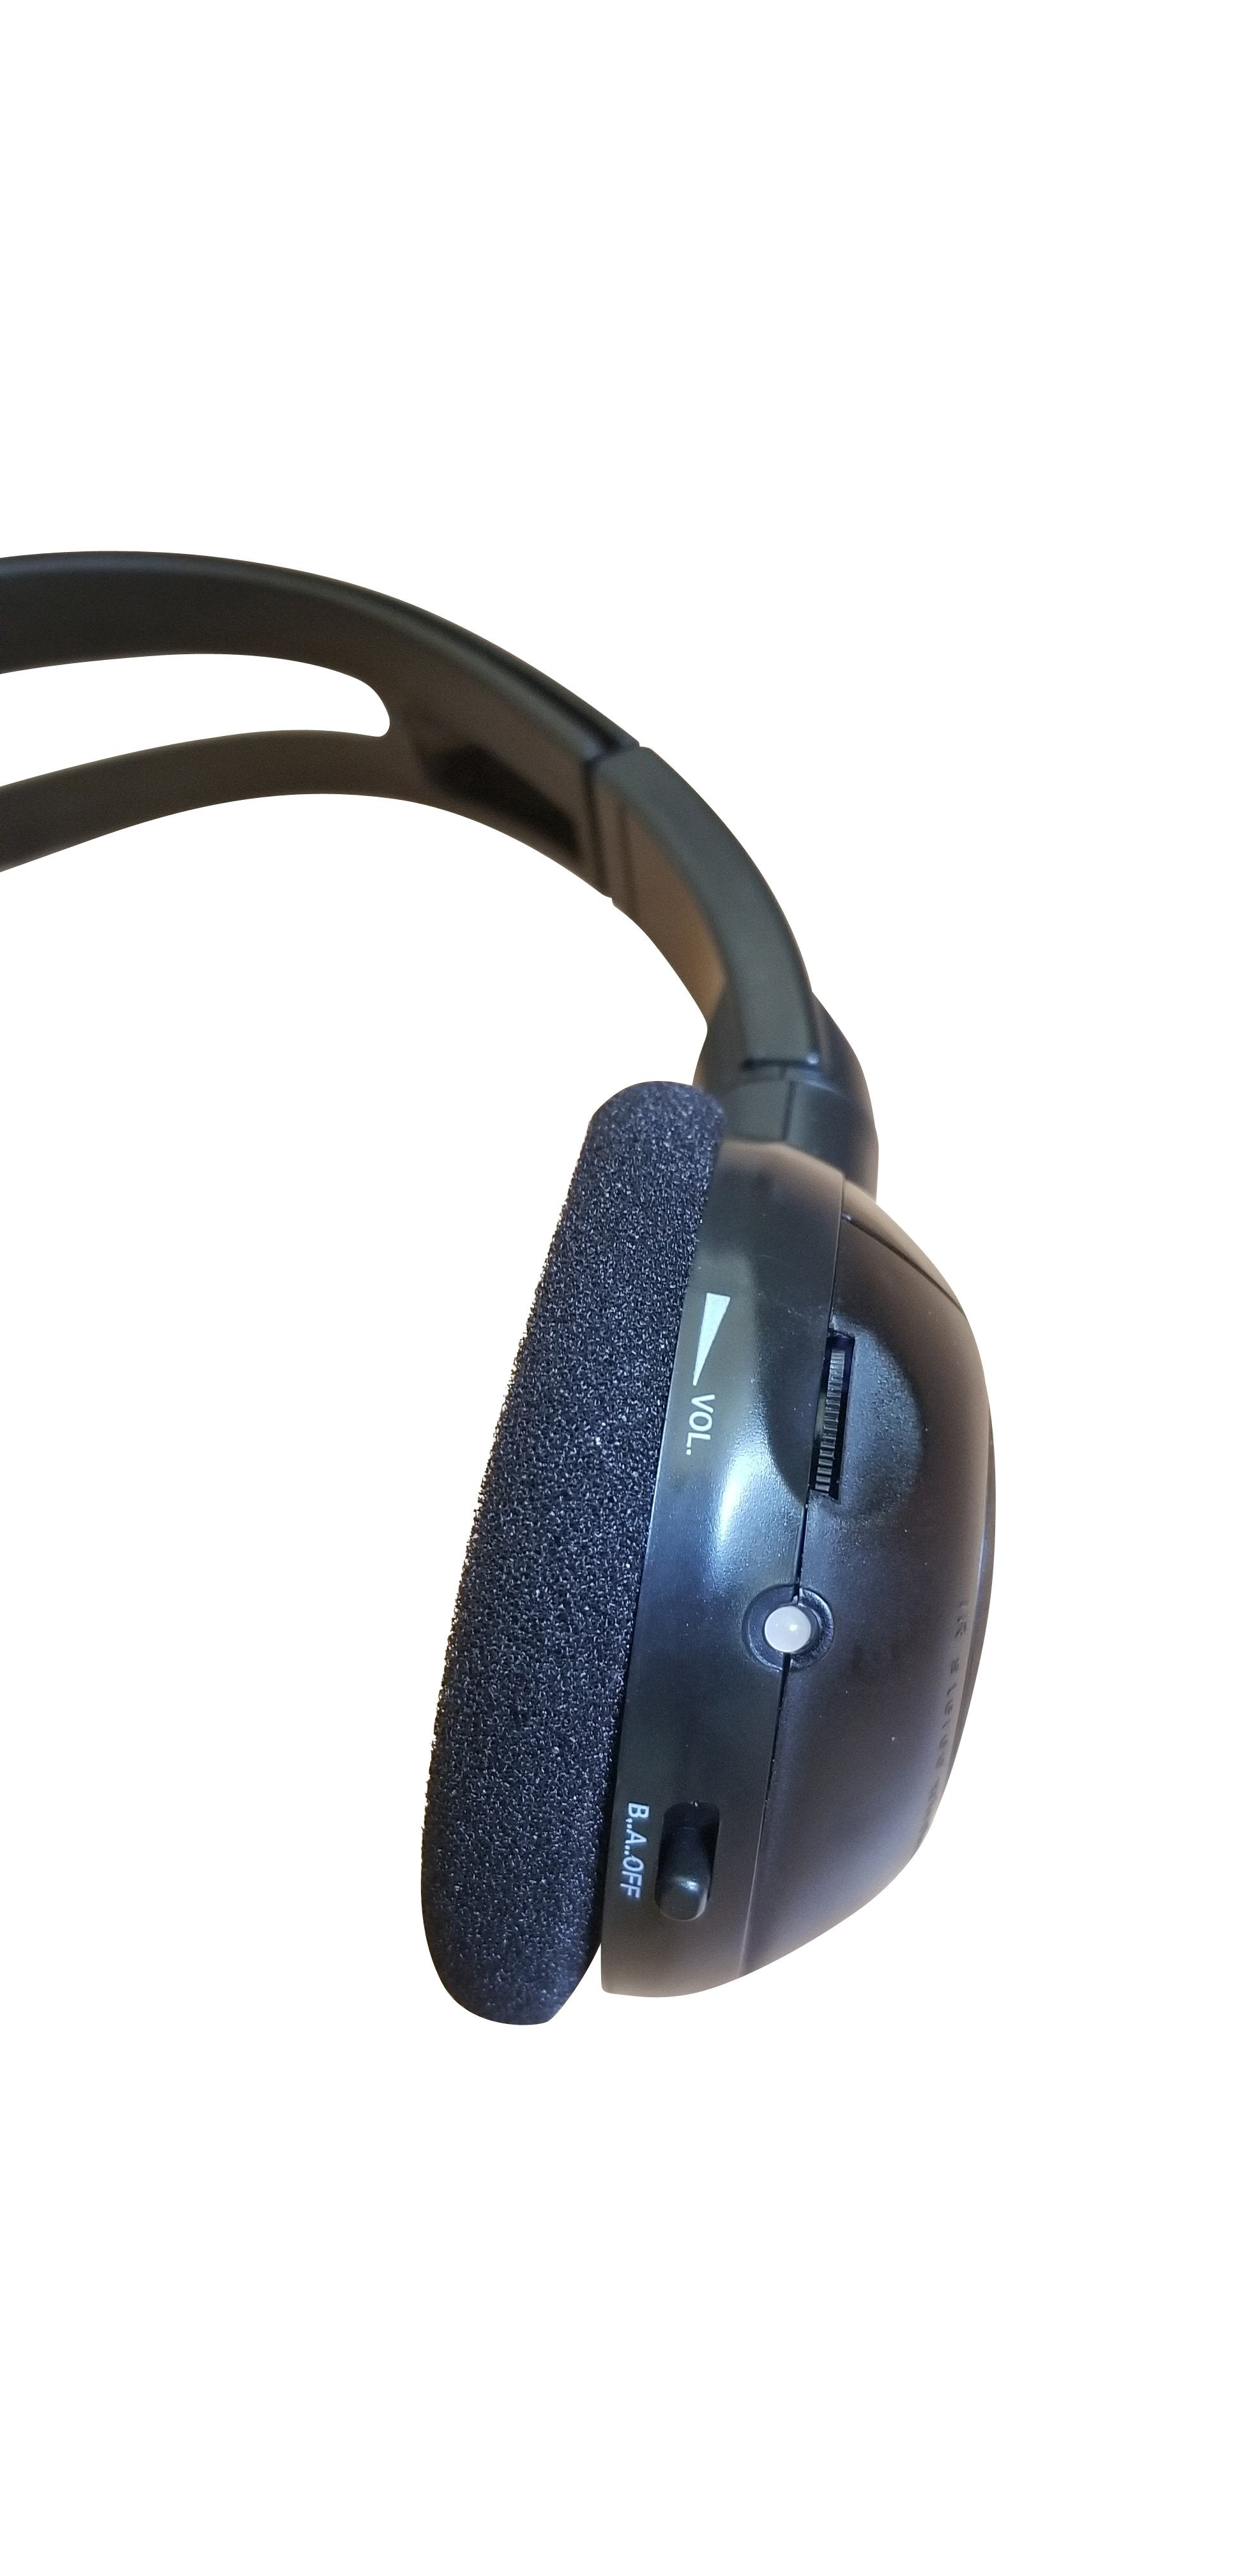 2007 Ford Edge Wireless DVD Headphone